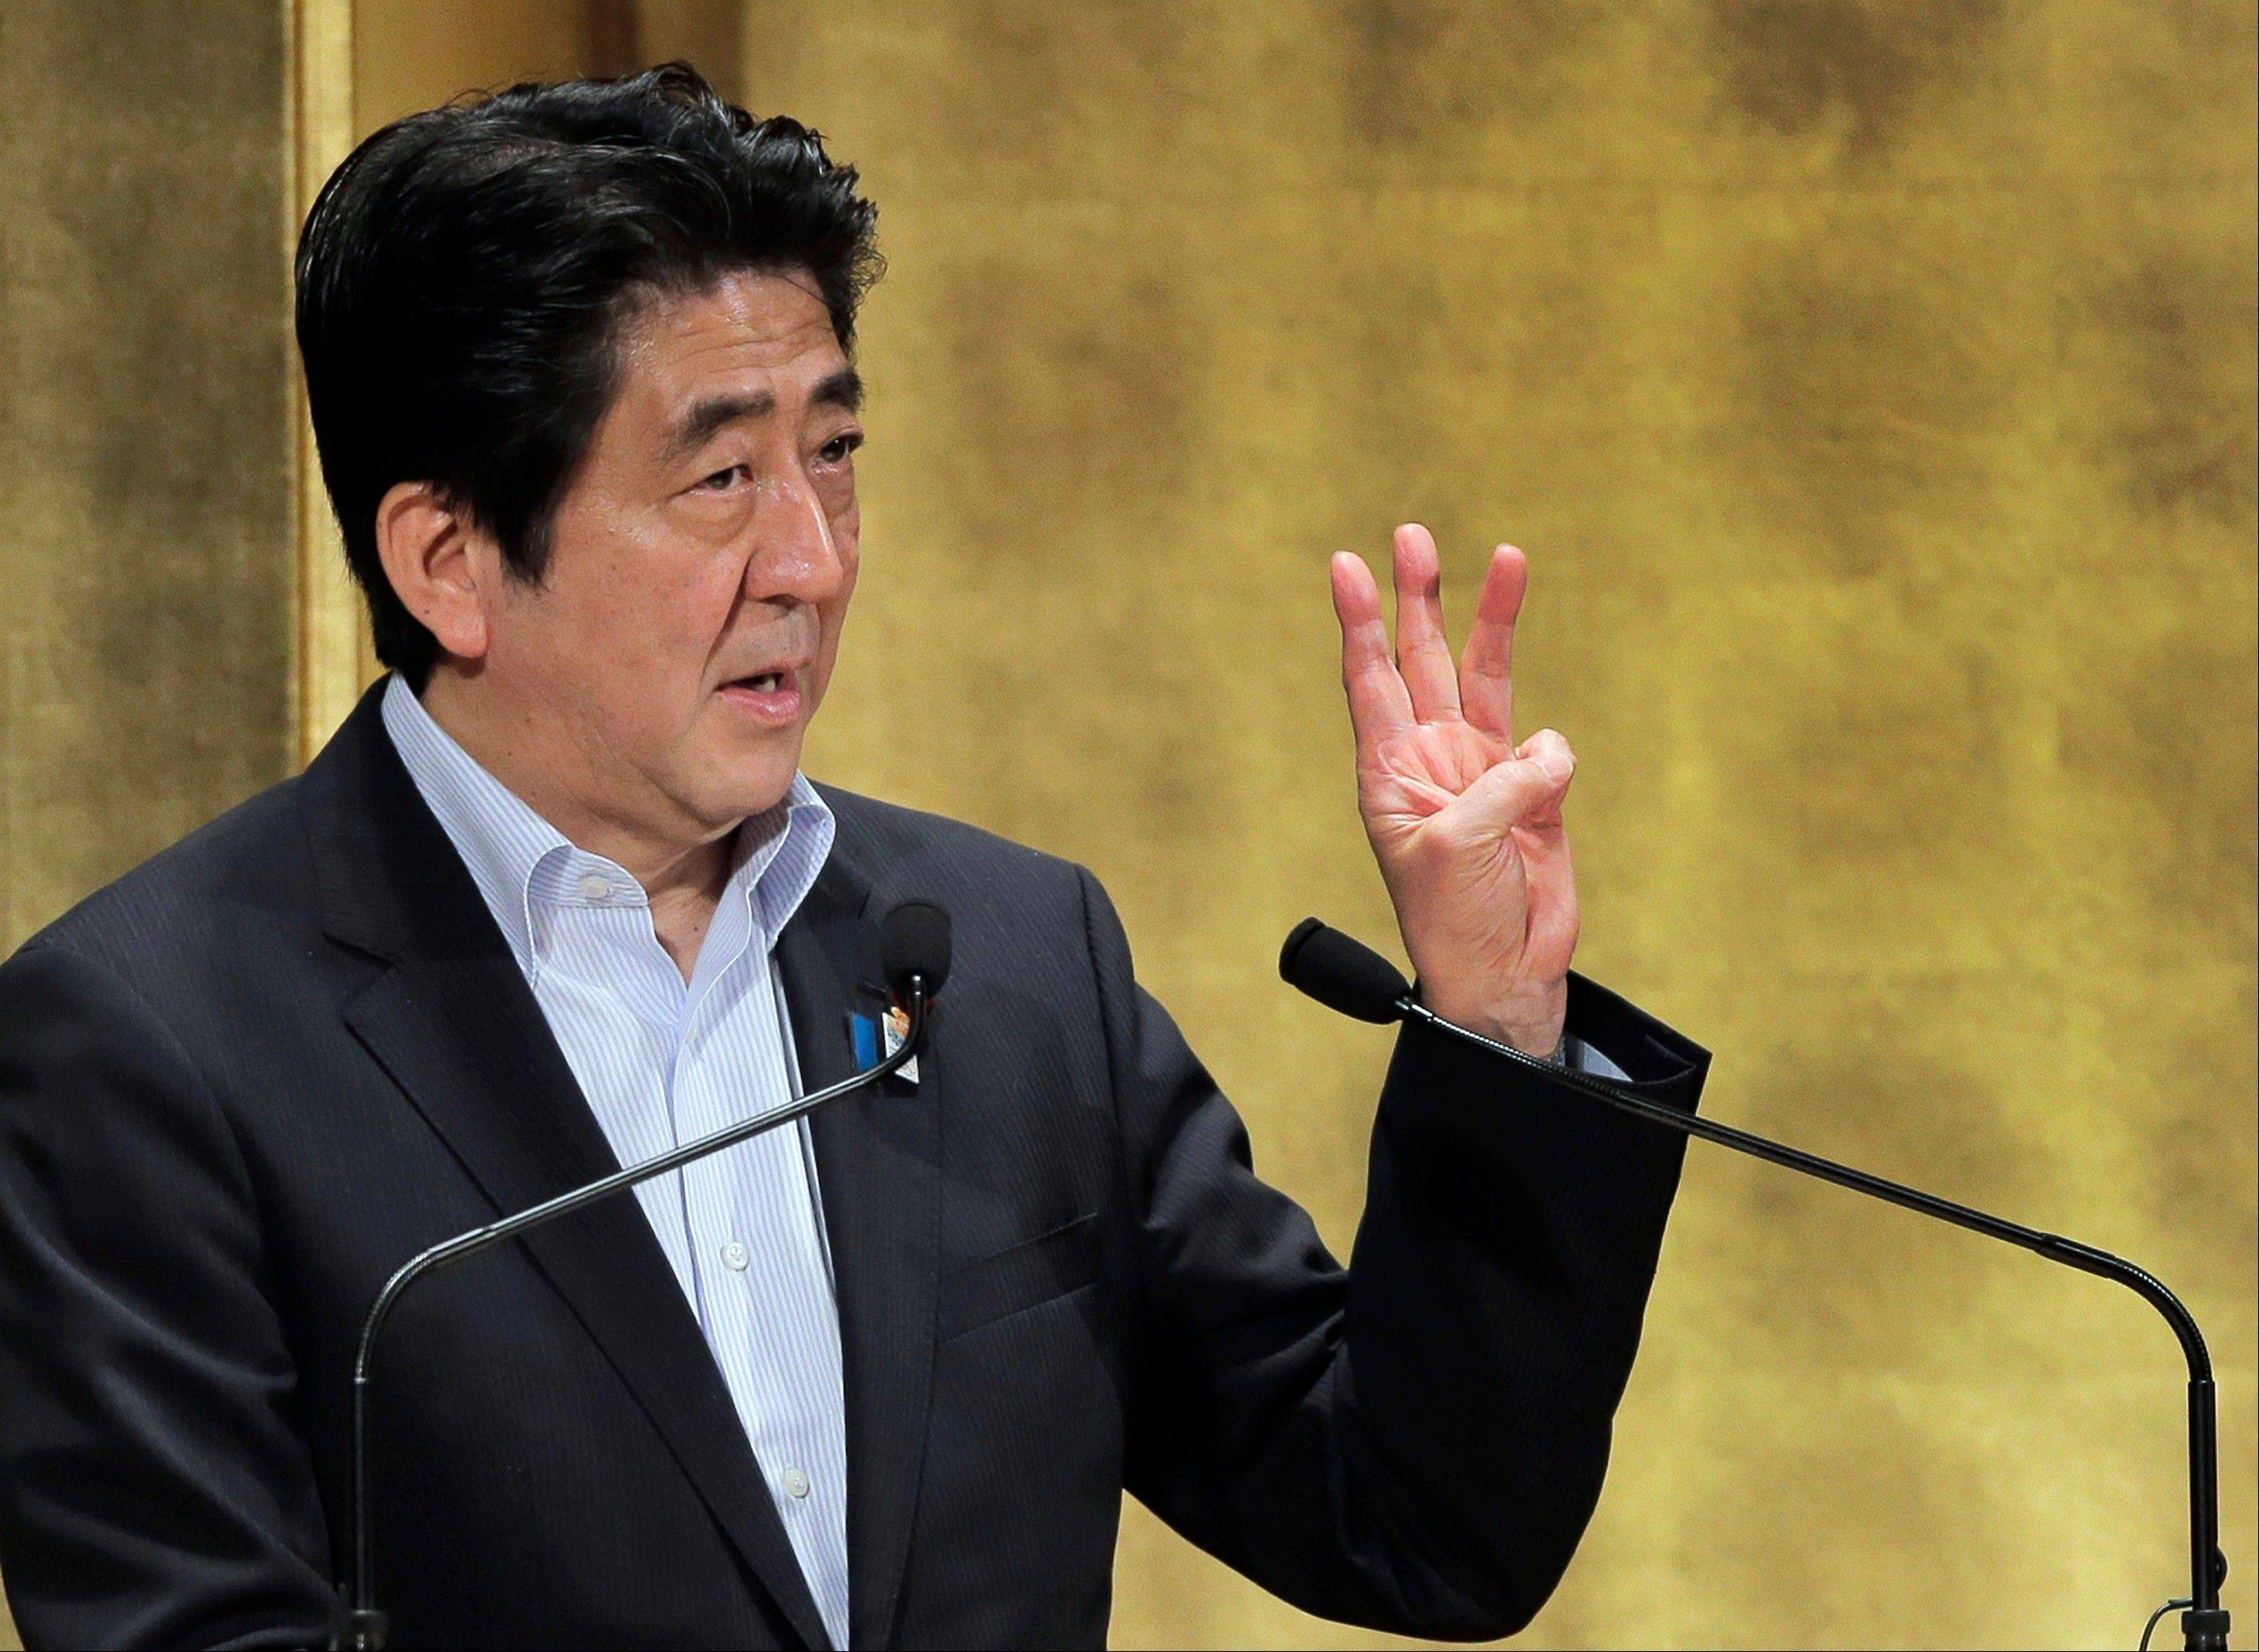 Japanese Prime Minister Shinzo Abe gestures Wednesday during a speech at a seminar in Tokyo. Abe outlined a sweeping blueprint for rejuvenating Japan's ailing economy with reforms meant to bring more women into the workforce, promote industrial innovation and coax cash-hoarding corporations into investing more.